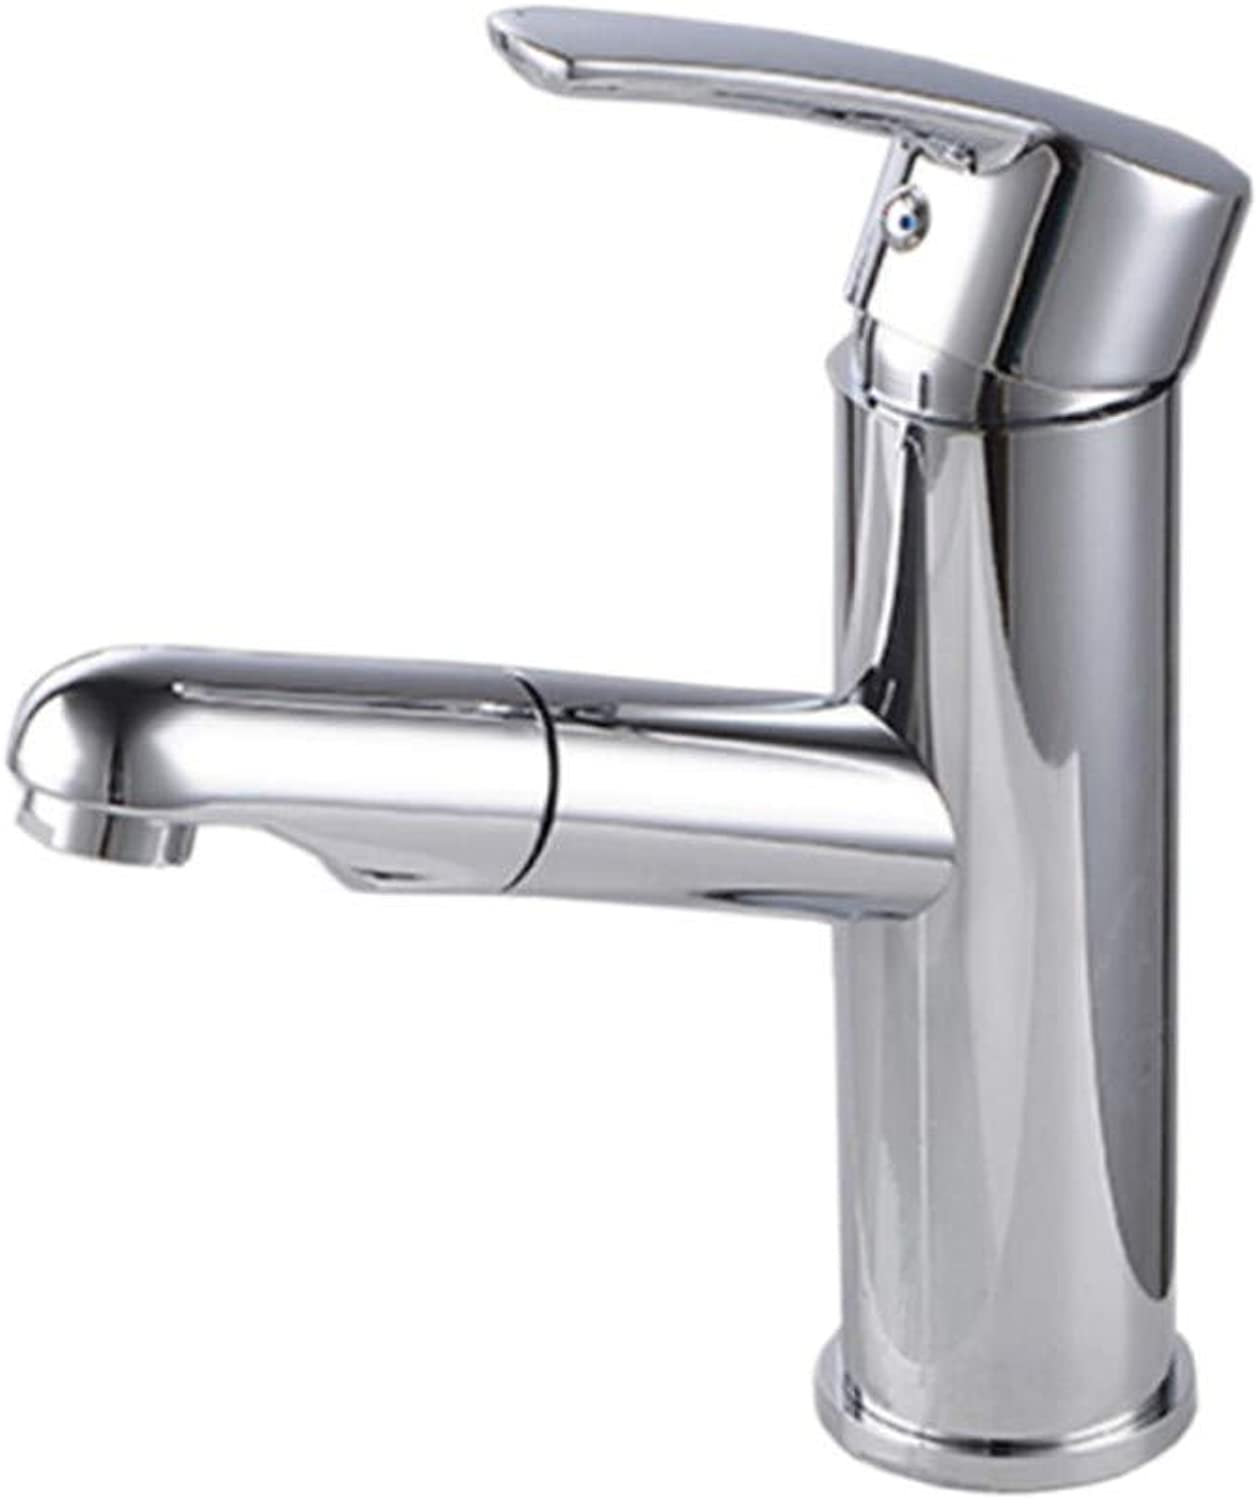 Basin Faucetcopper Faucet Hot and Cold Pull Basin Faucet